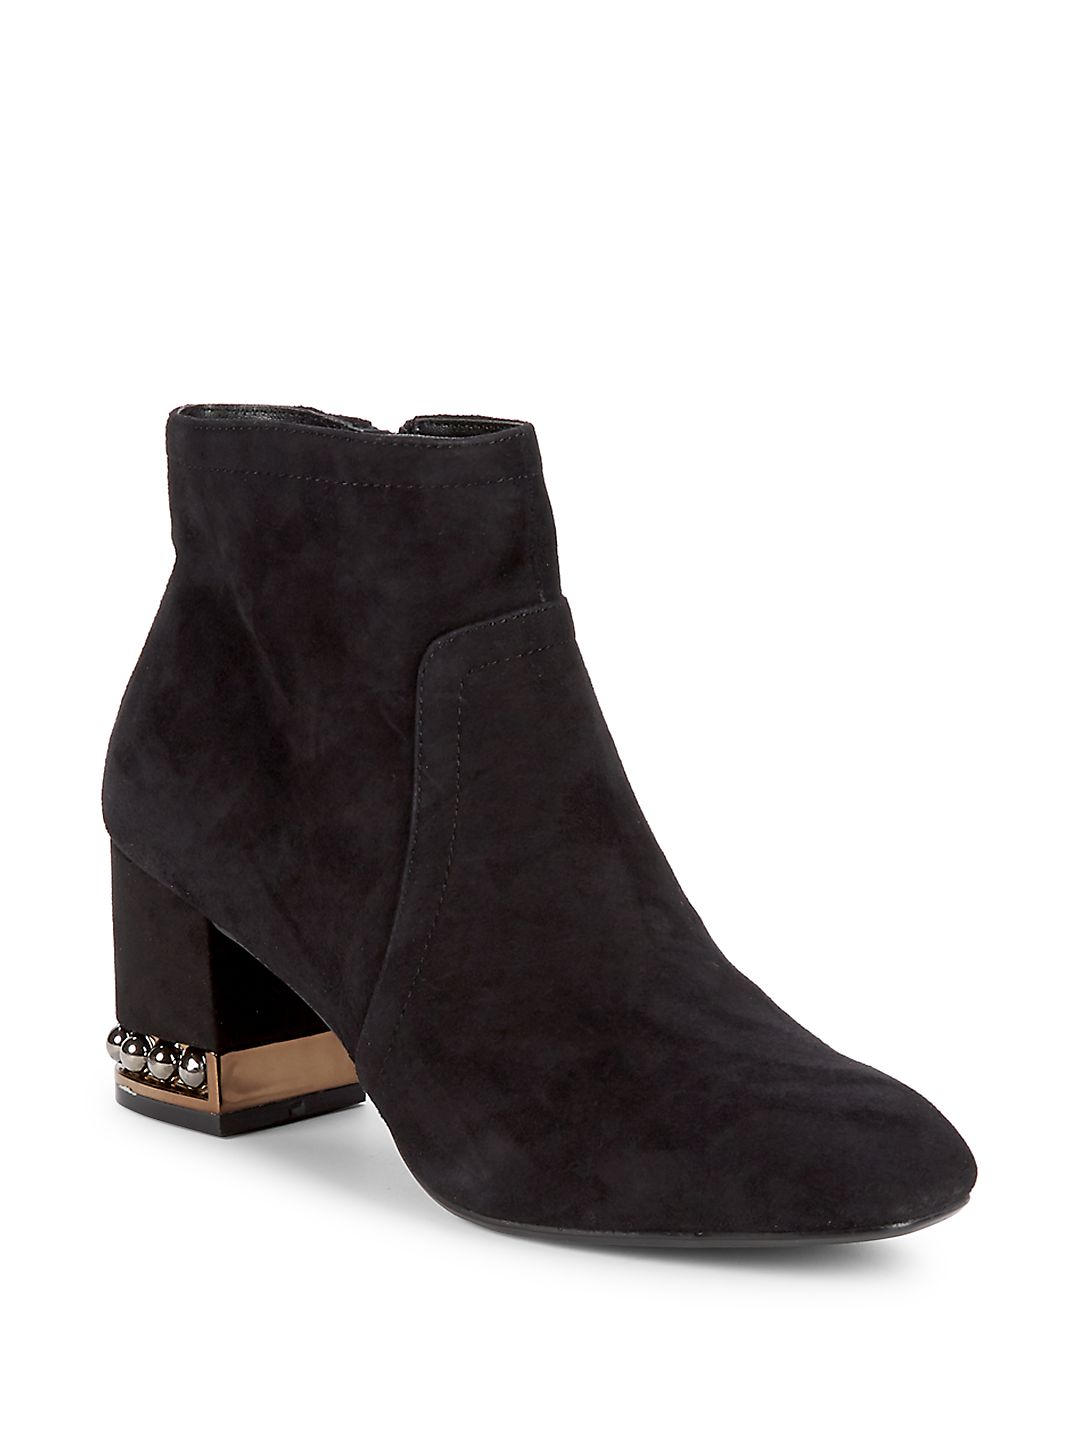 Walena Suede Ankle Boots